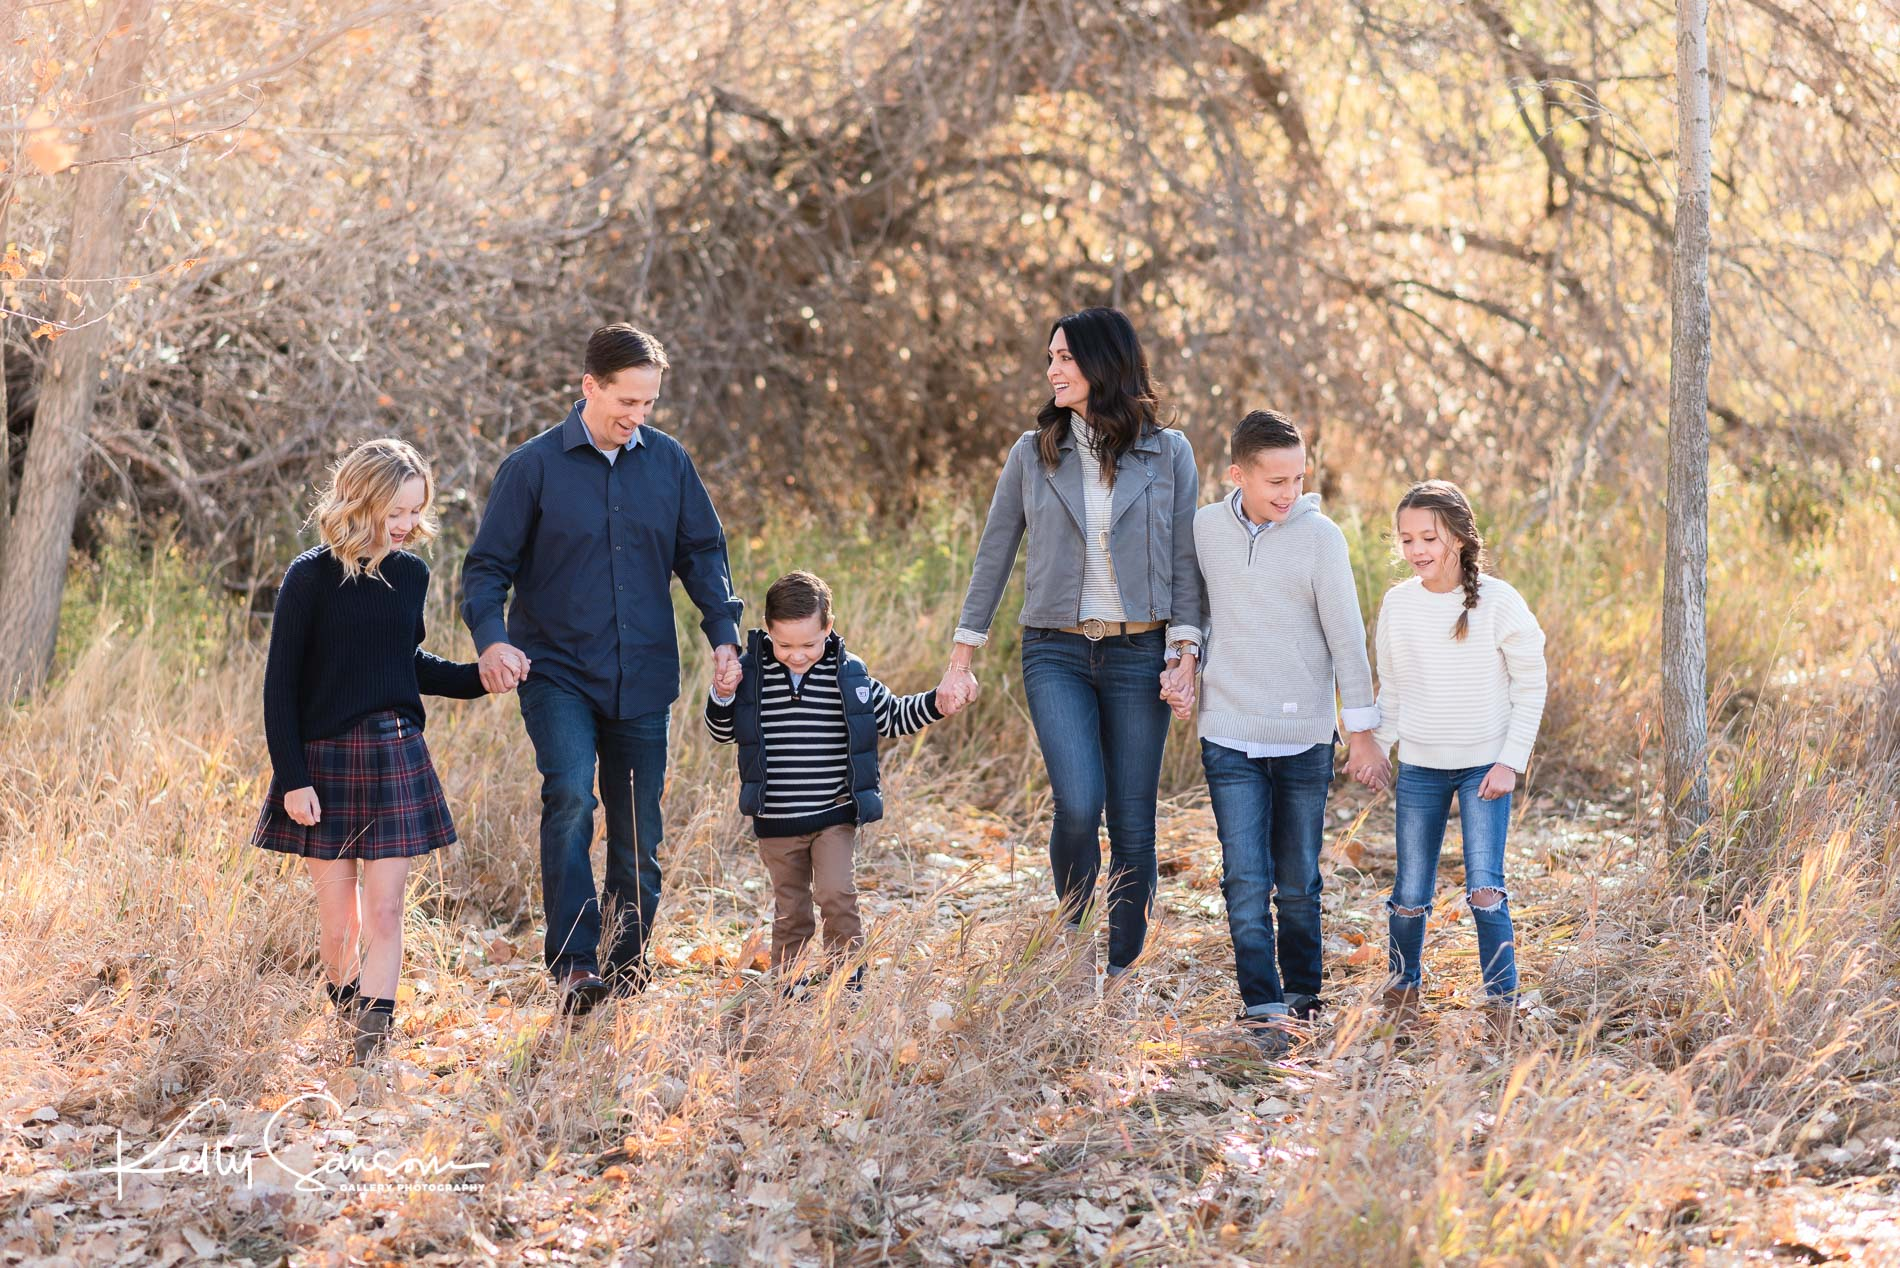 Oaks Family Photography at Kays Creek Parkway